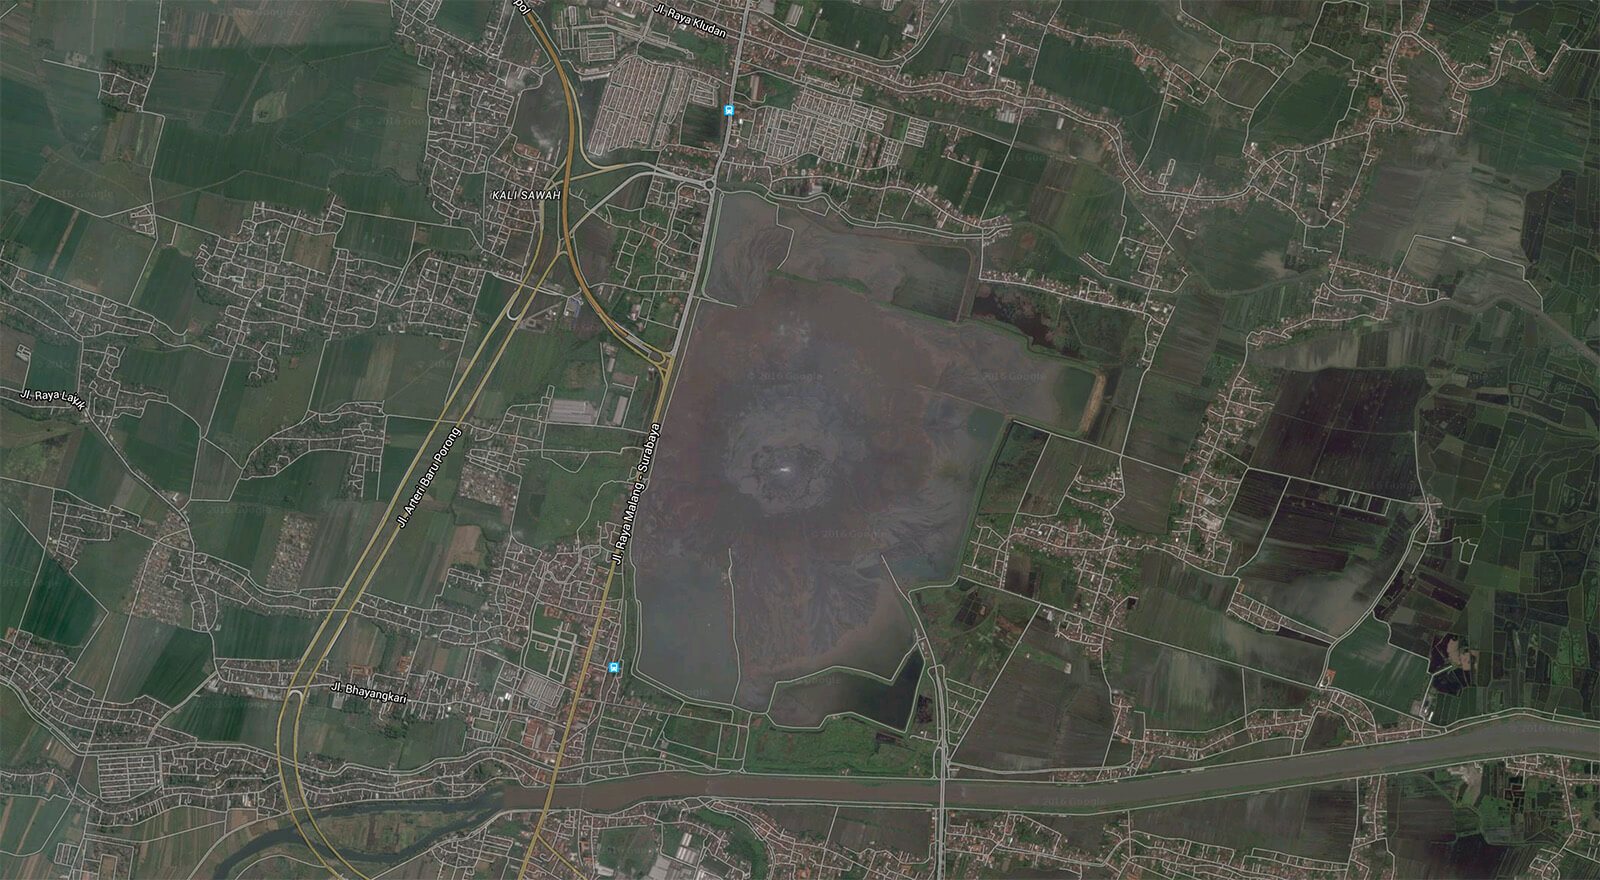 Aerial view of the Sidoarjo Mud Volcano as well as the damage to surrounding residents and roads